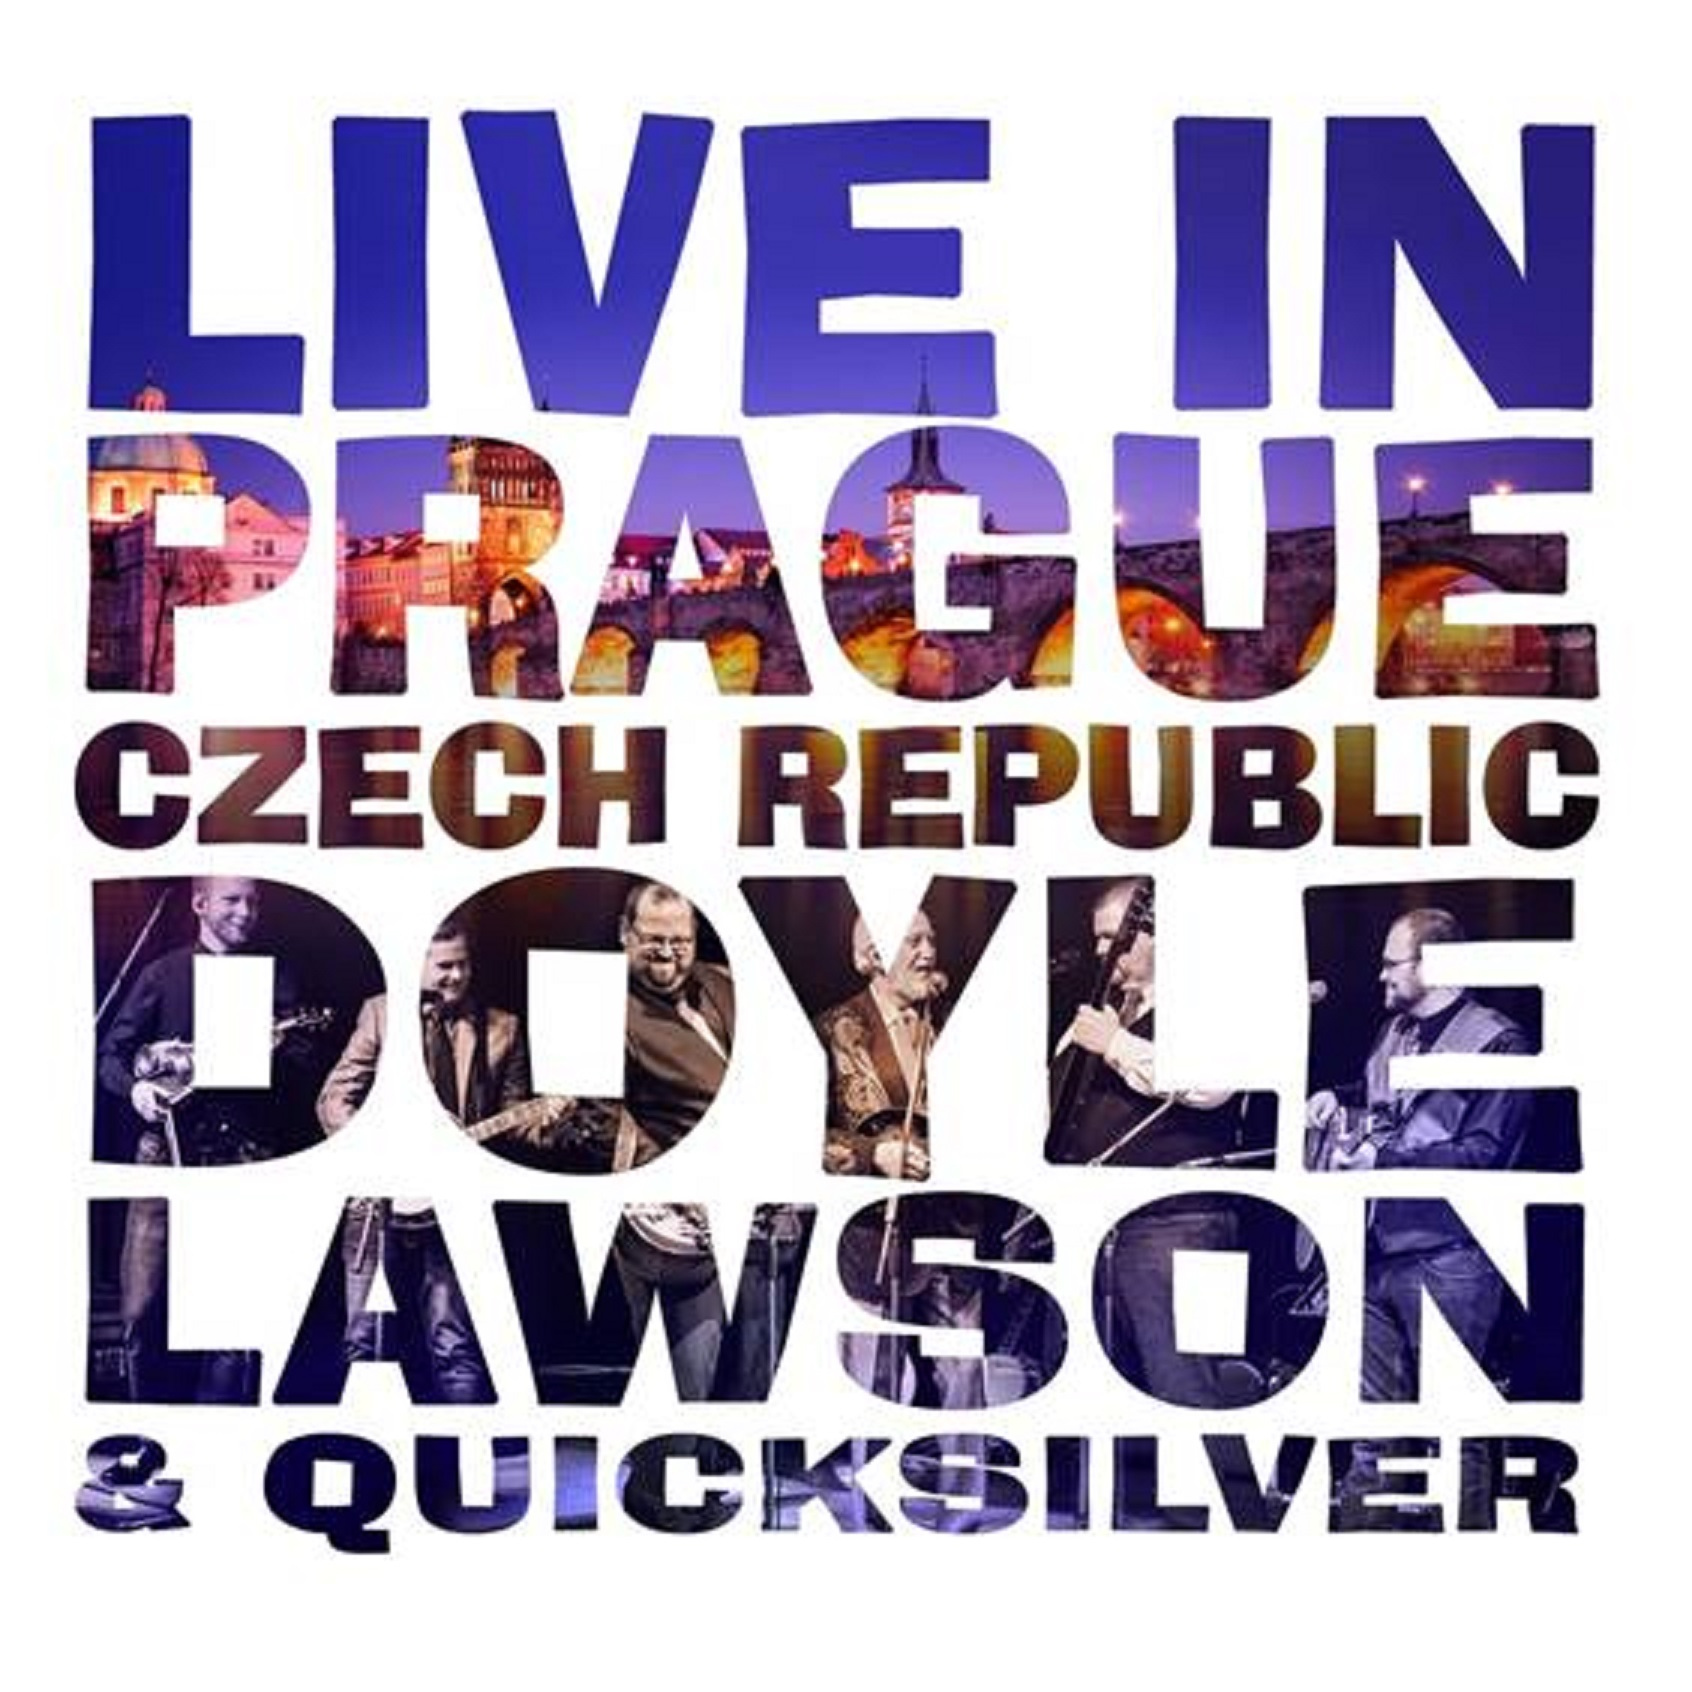 Doyle Lawson & Quicksilver LIVE IN PRAGUE CZECH REPUBLIC